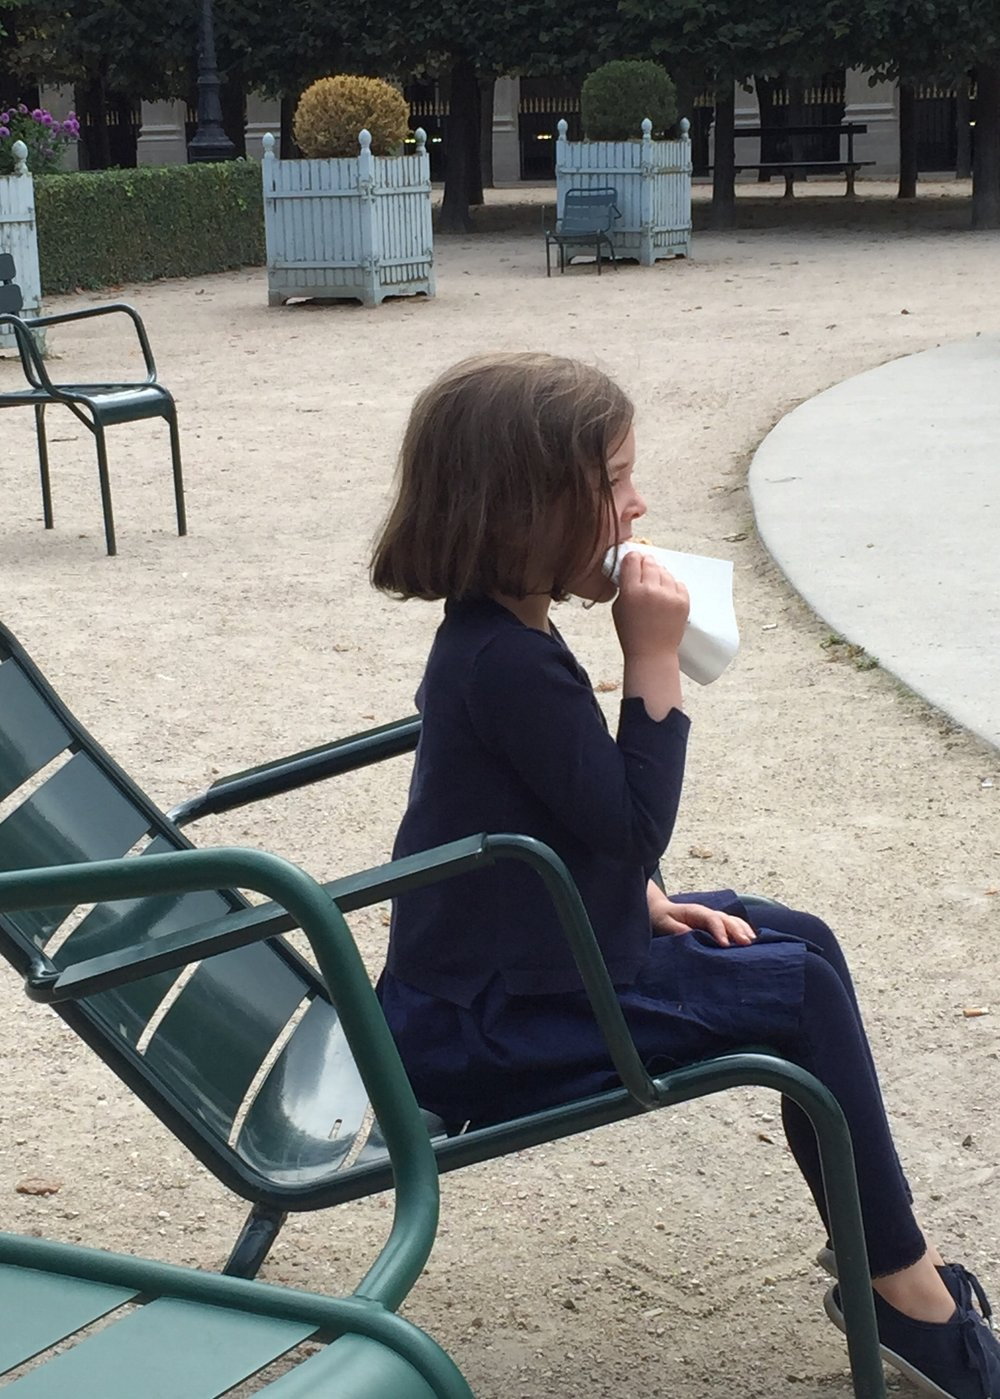 JARDIN DU PALAIS ROYAL, CROISSANT EATING, PARIS